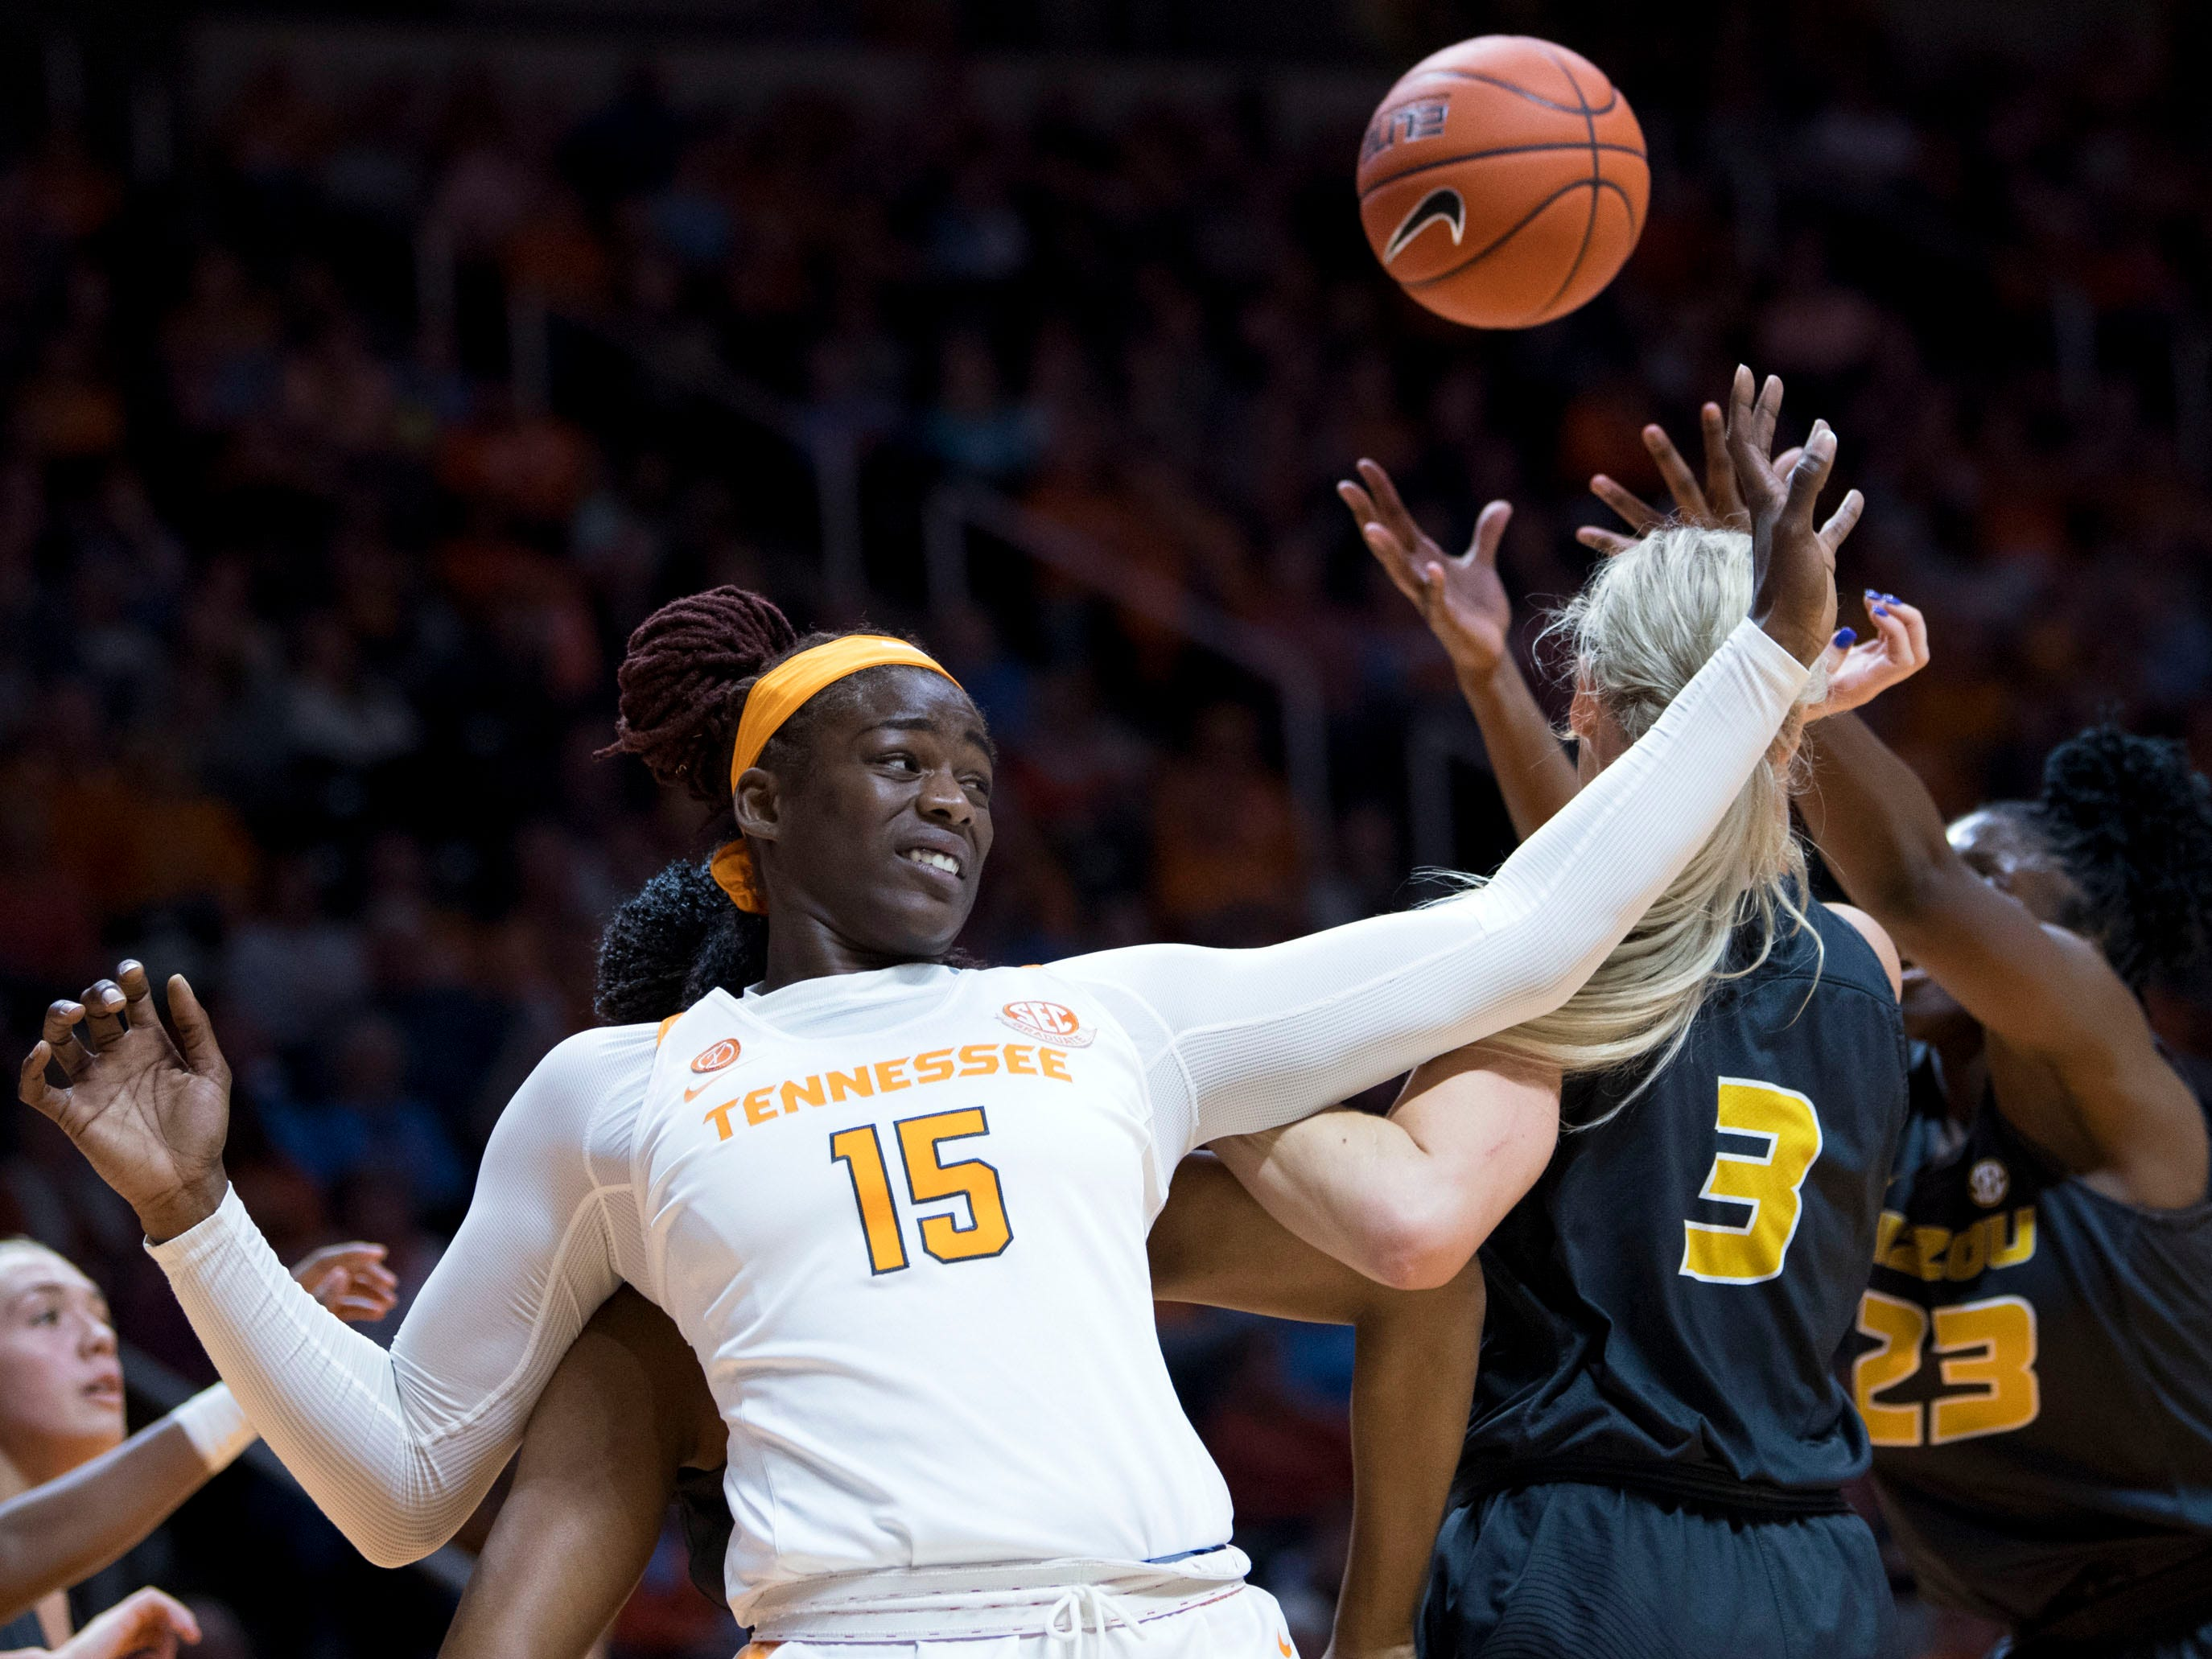 Tennessee's Cheridene Green (15) fights for a rebound against Missouri on Sunday, January 6, 2019.